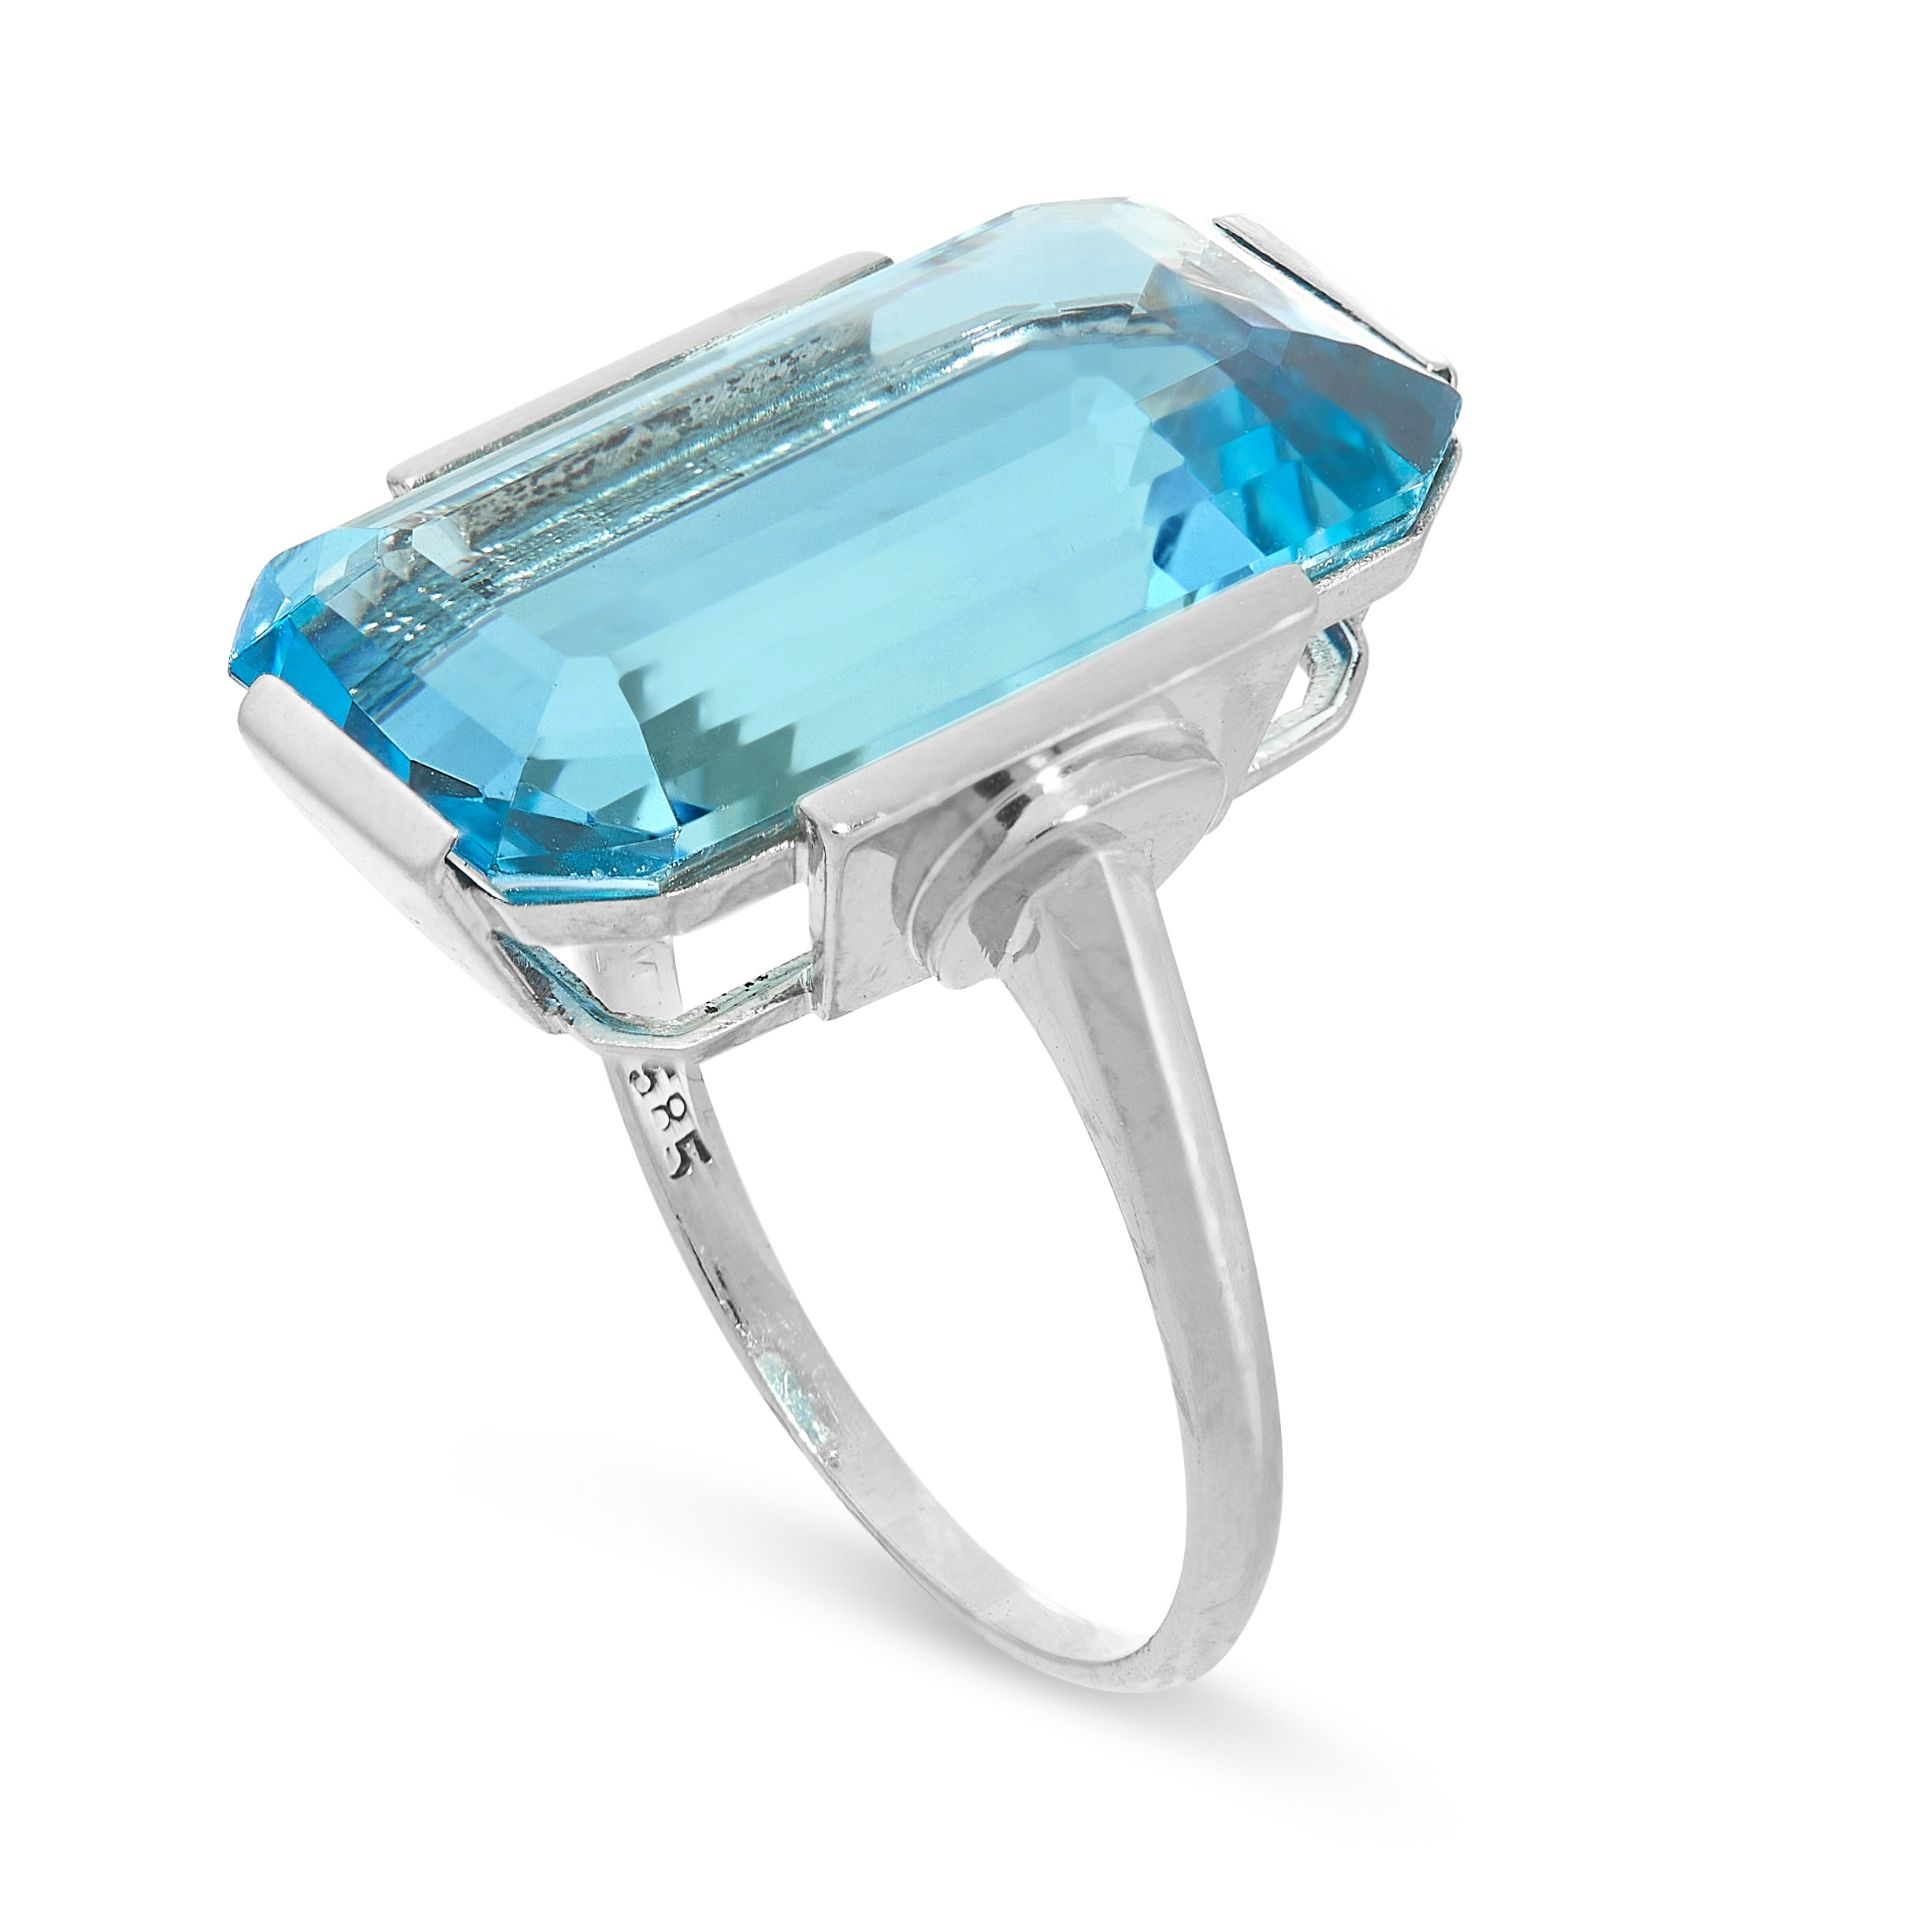 A FINE AQUAMARINE DRESS RING in 14ct white gold, set with an emerald cut aquamarine of 15.23 carats, - Image 2 of 2